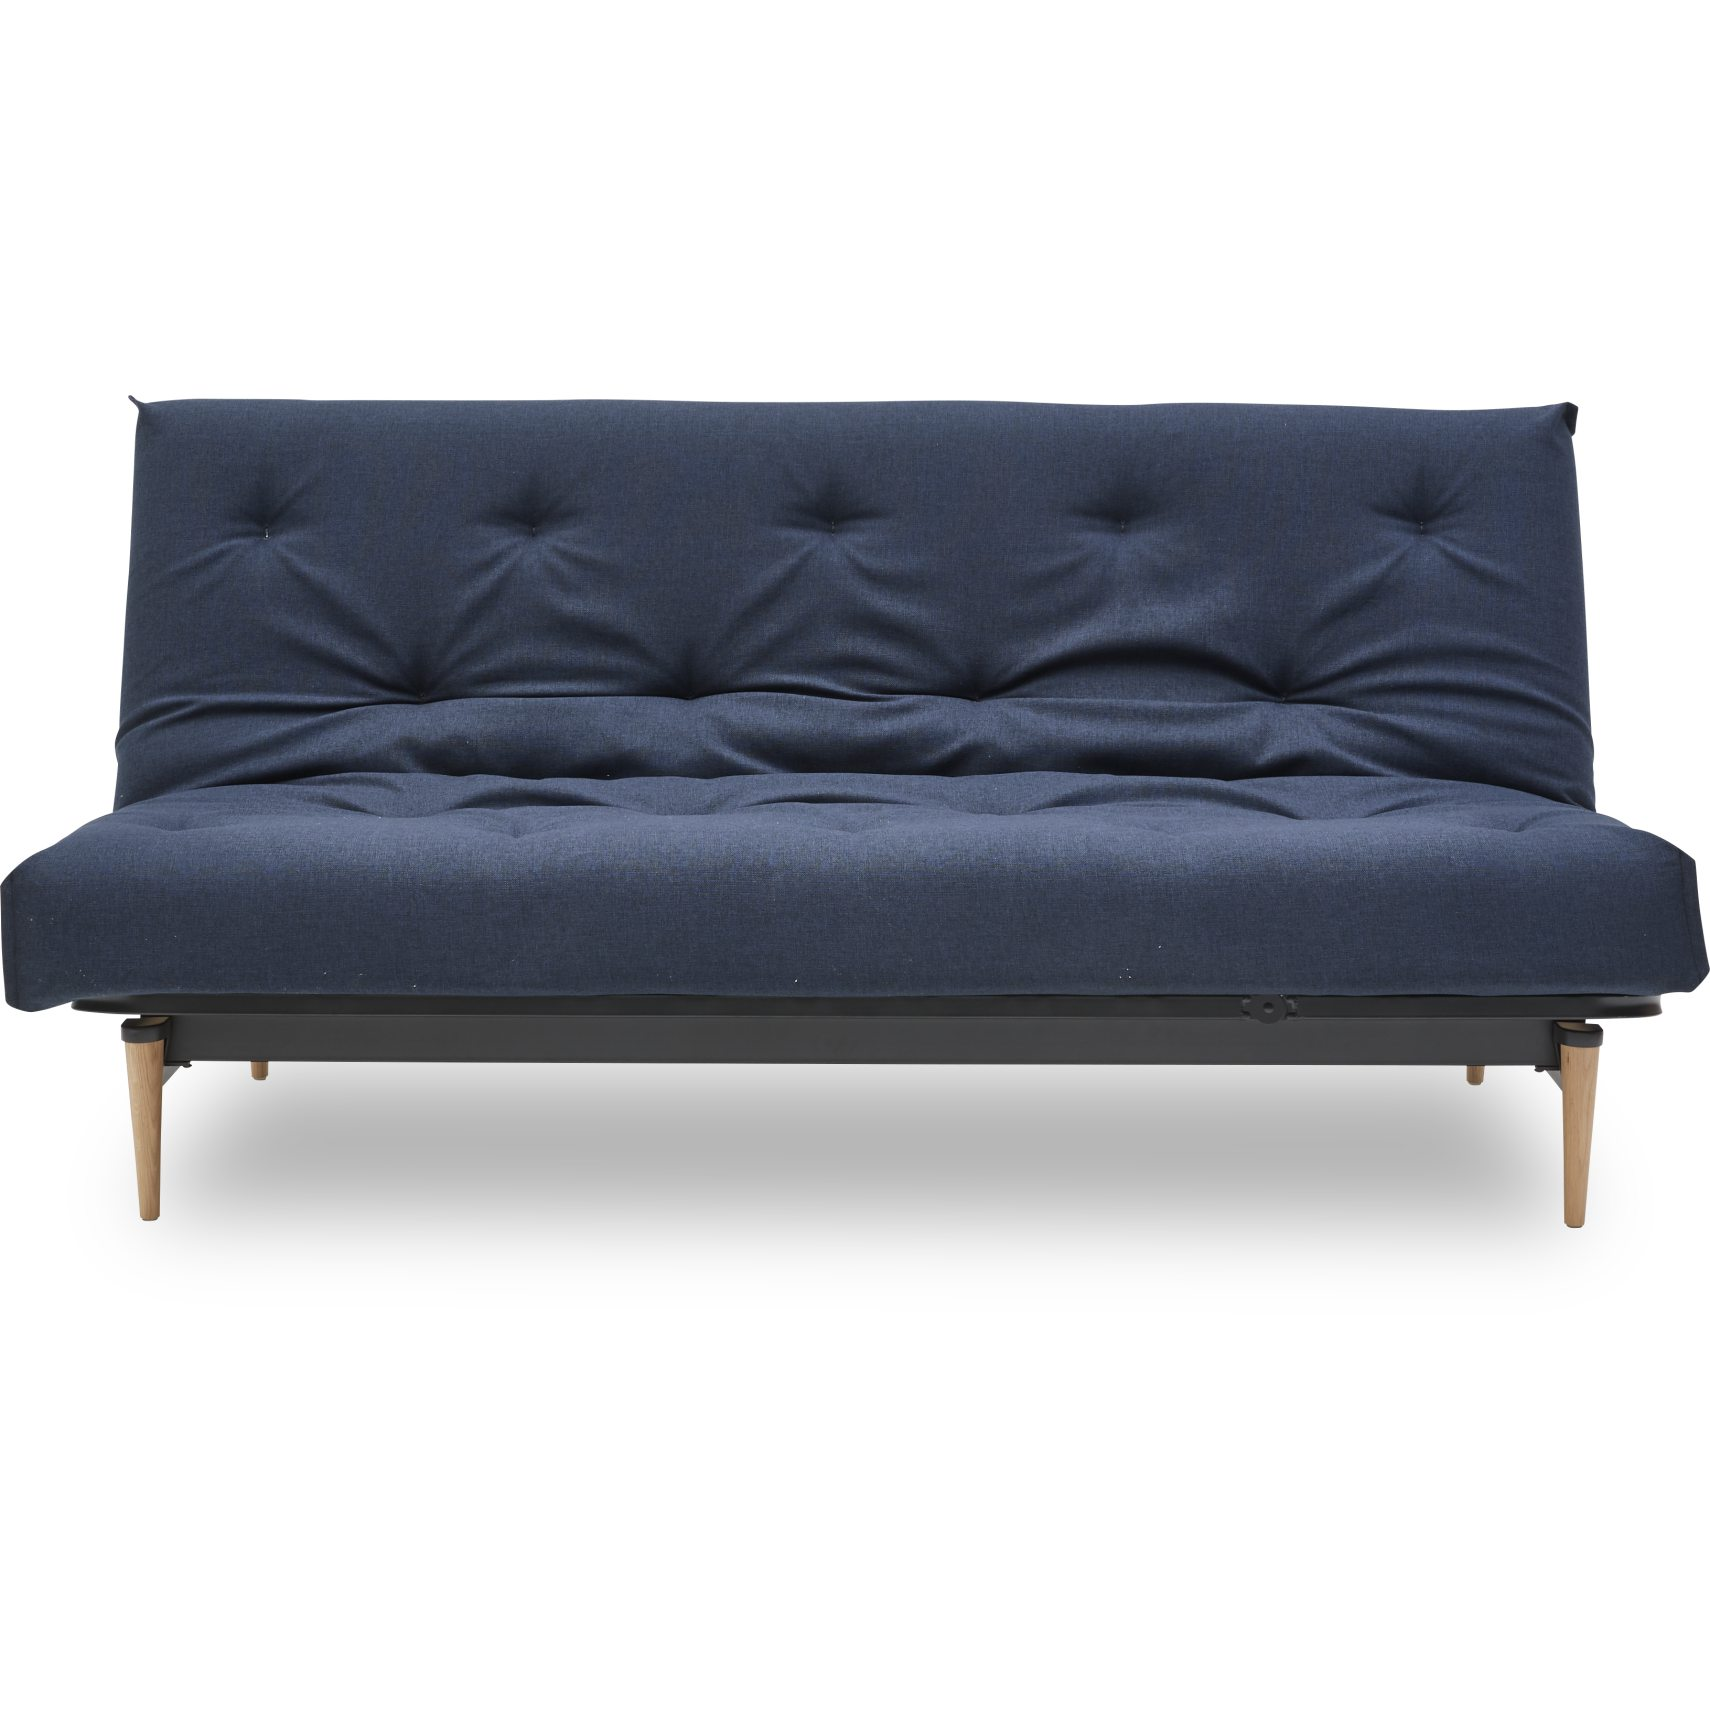 Innovation Living - Colpus Sovesofa - Sovesofa